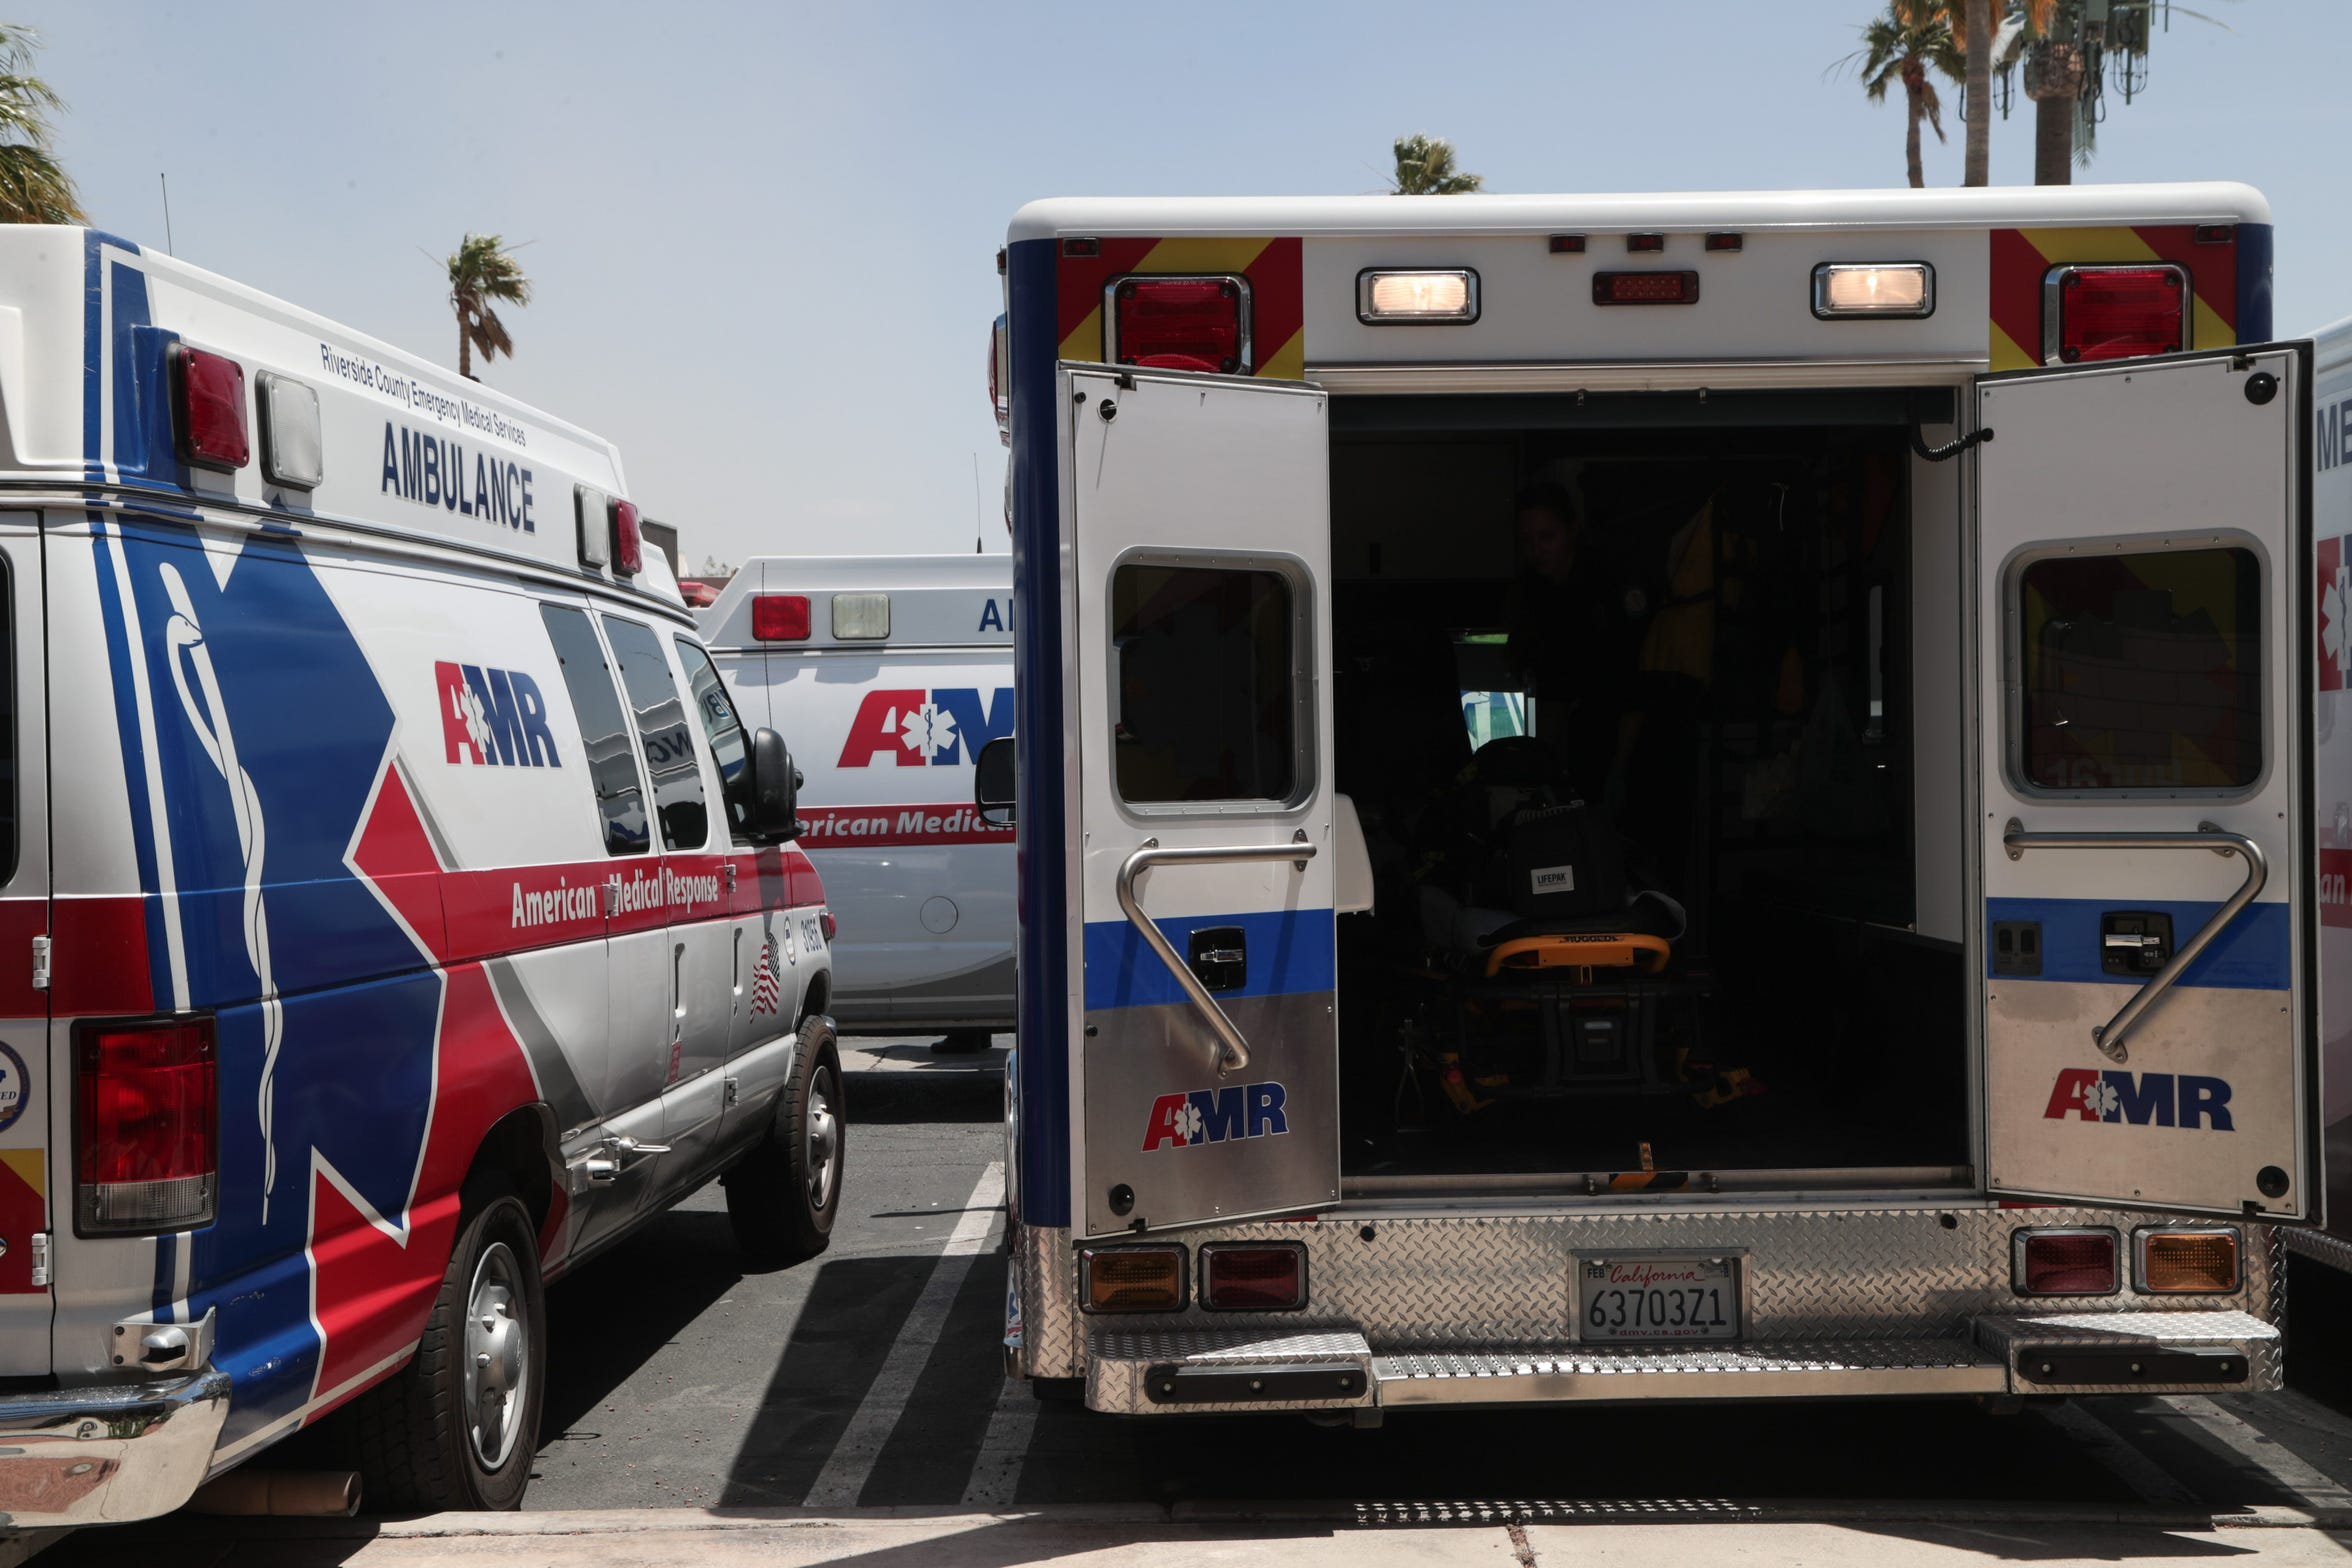 Ambulances are loaded up for shifts at American Medical Response in Palm Springs, Calif., May 22, 2019.